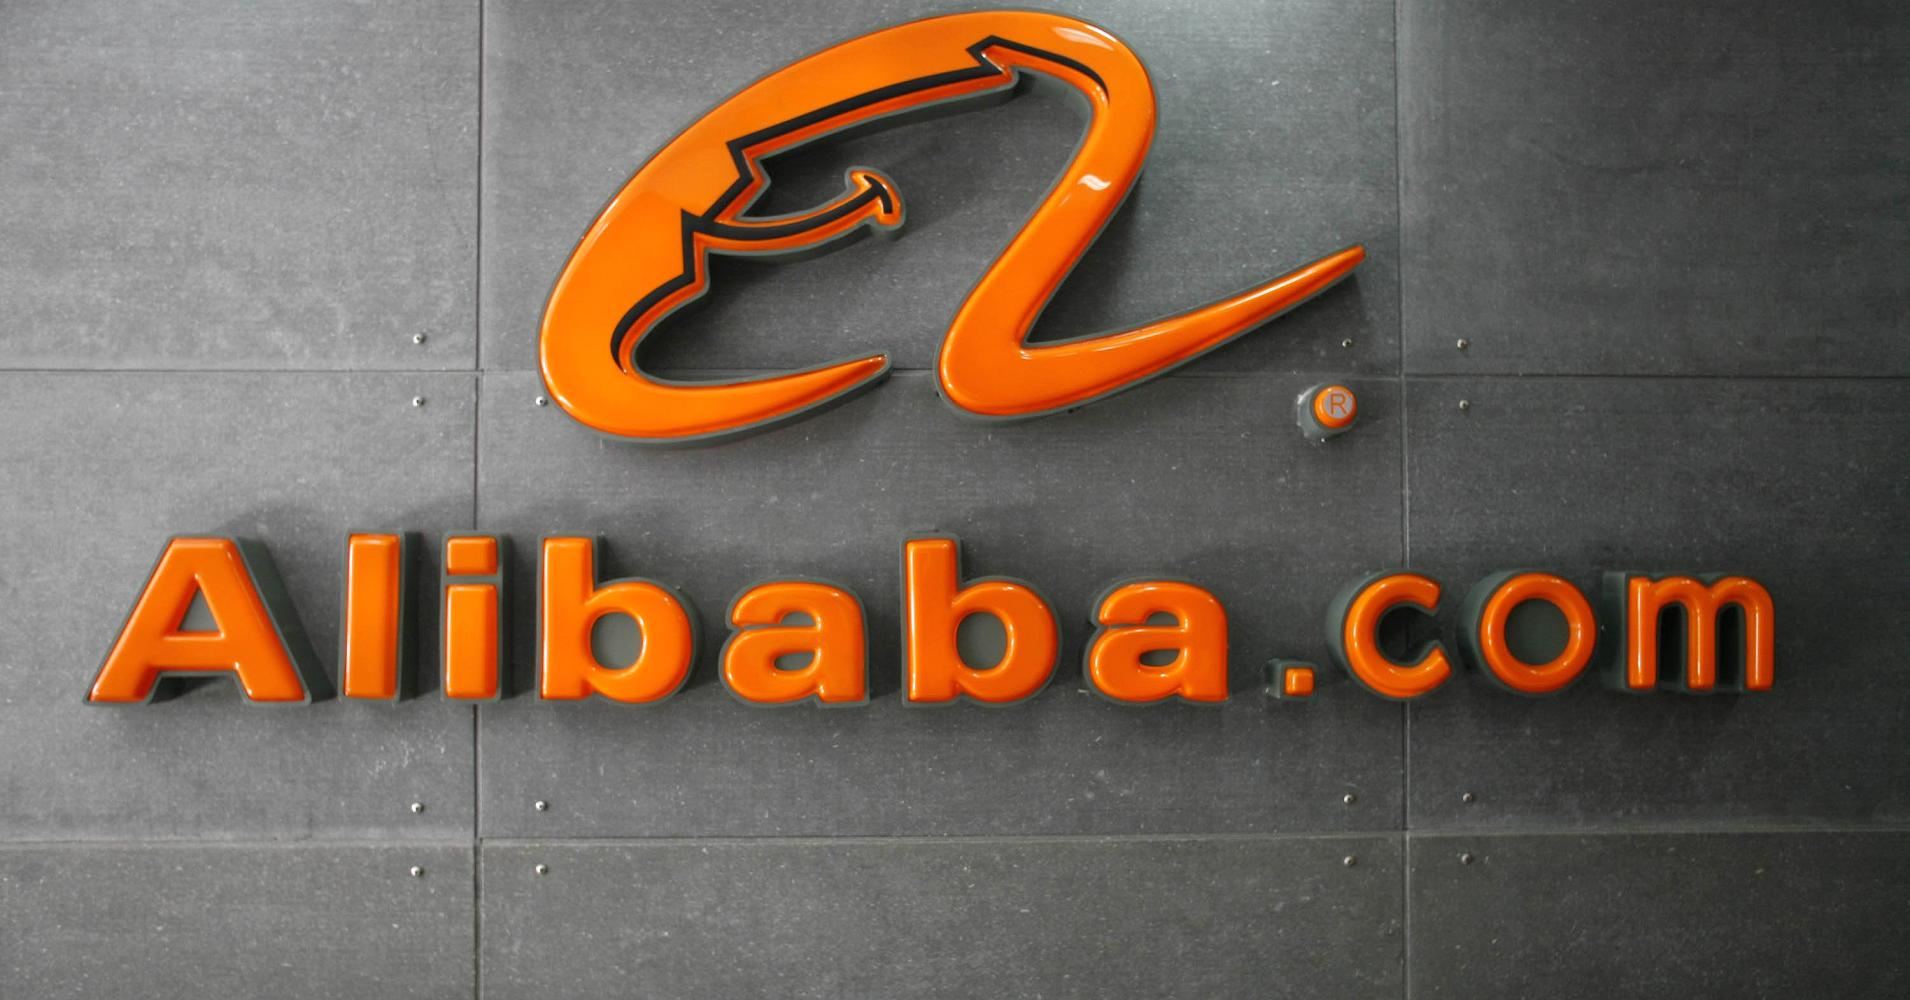 Alibaba Group Holding Limited